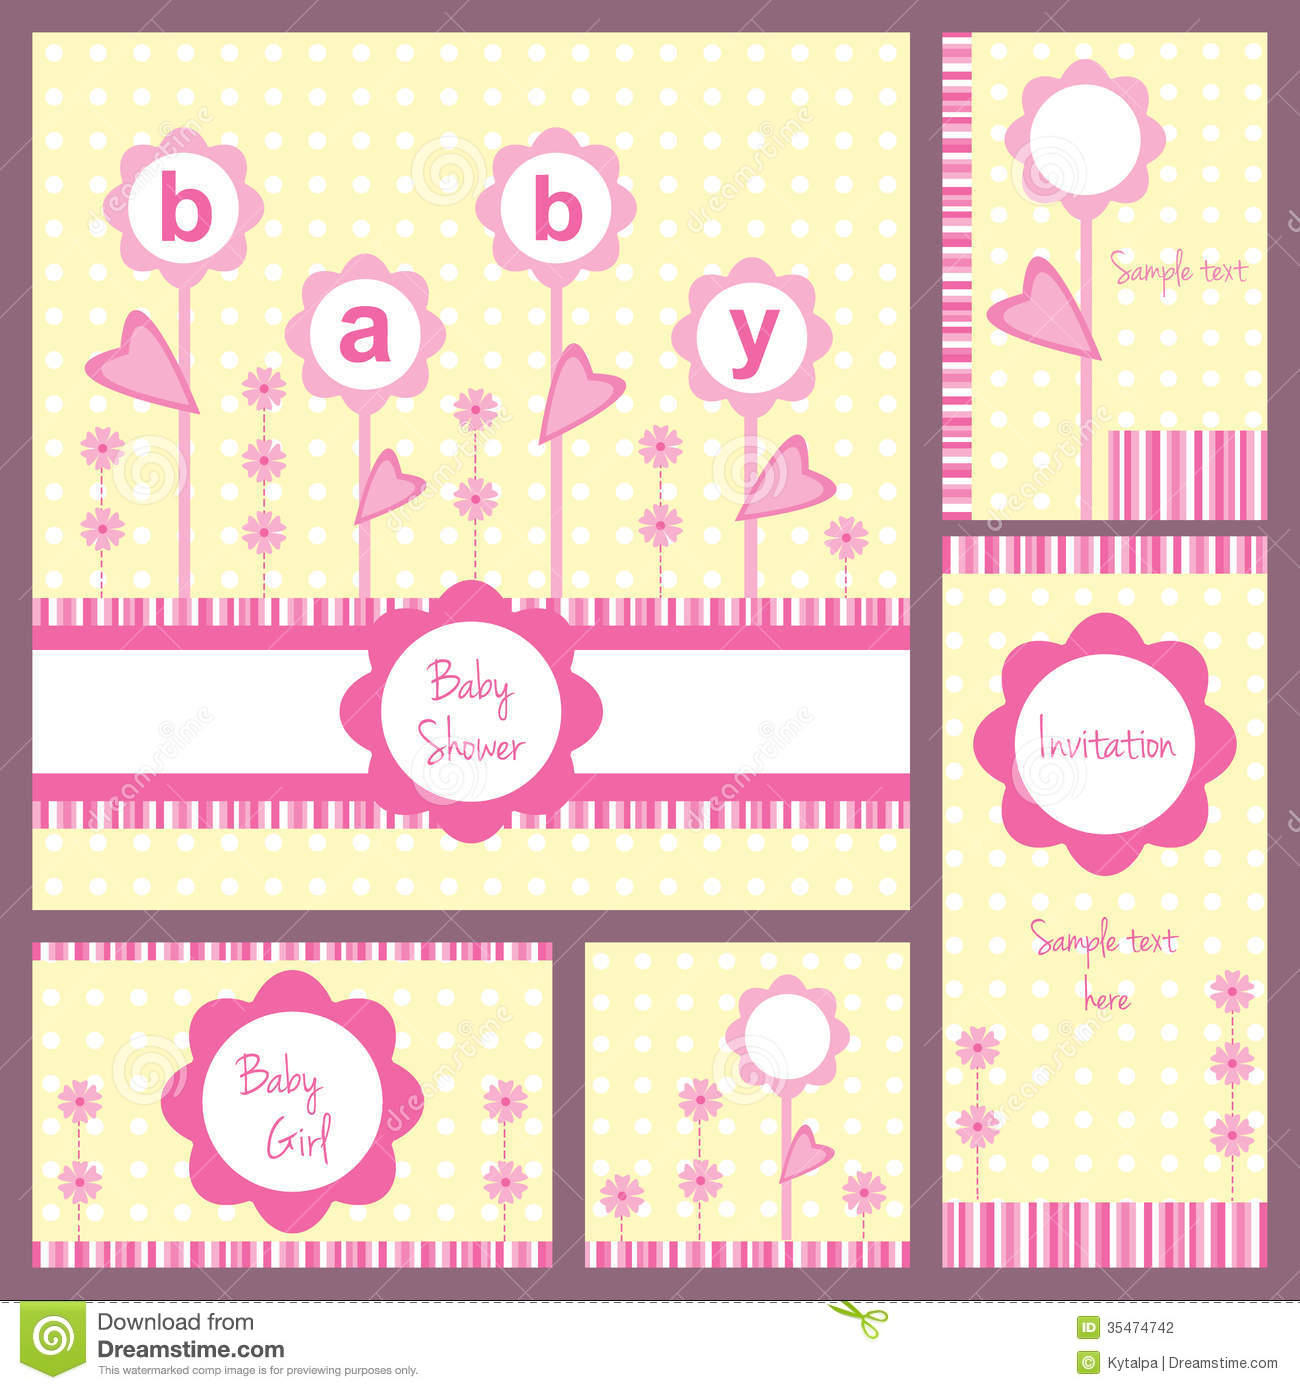 Baby Shower Invitation Cards For Girls as nice invitations design